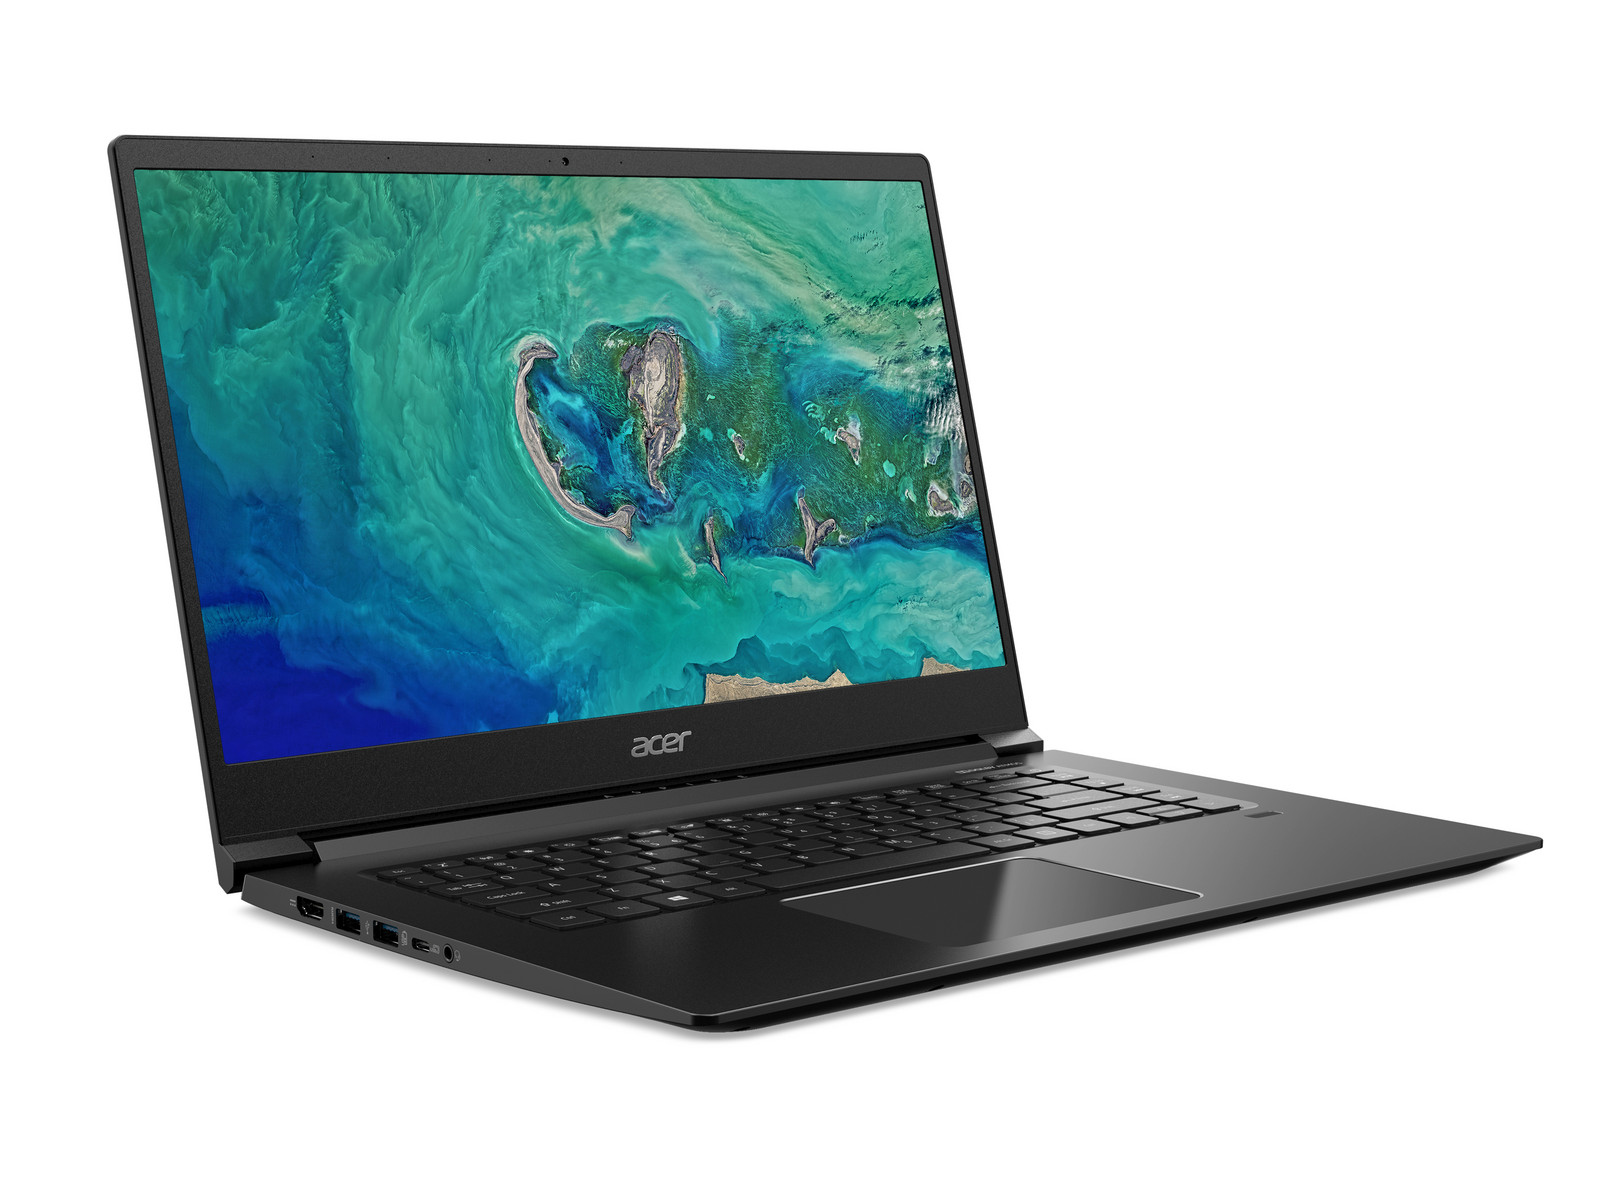 Acer unveils the Aspire 7 and Aspire 5 with Intel 'Kaby